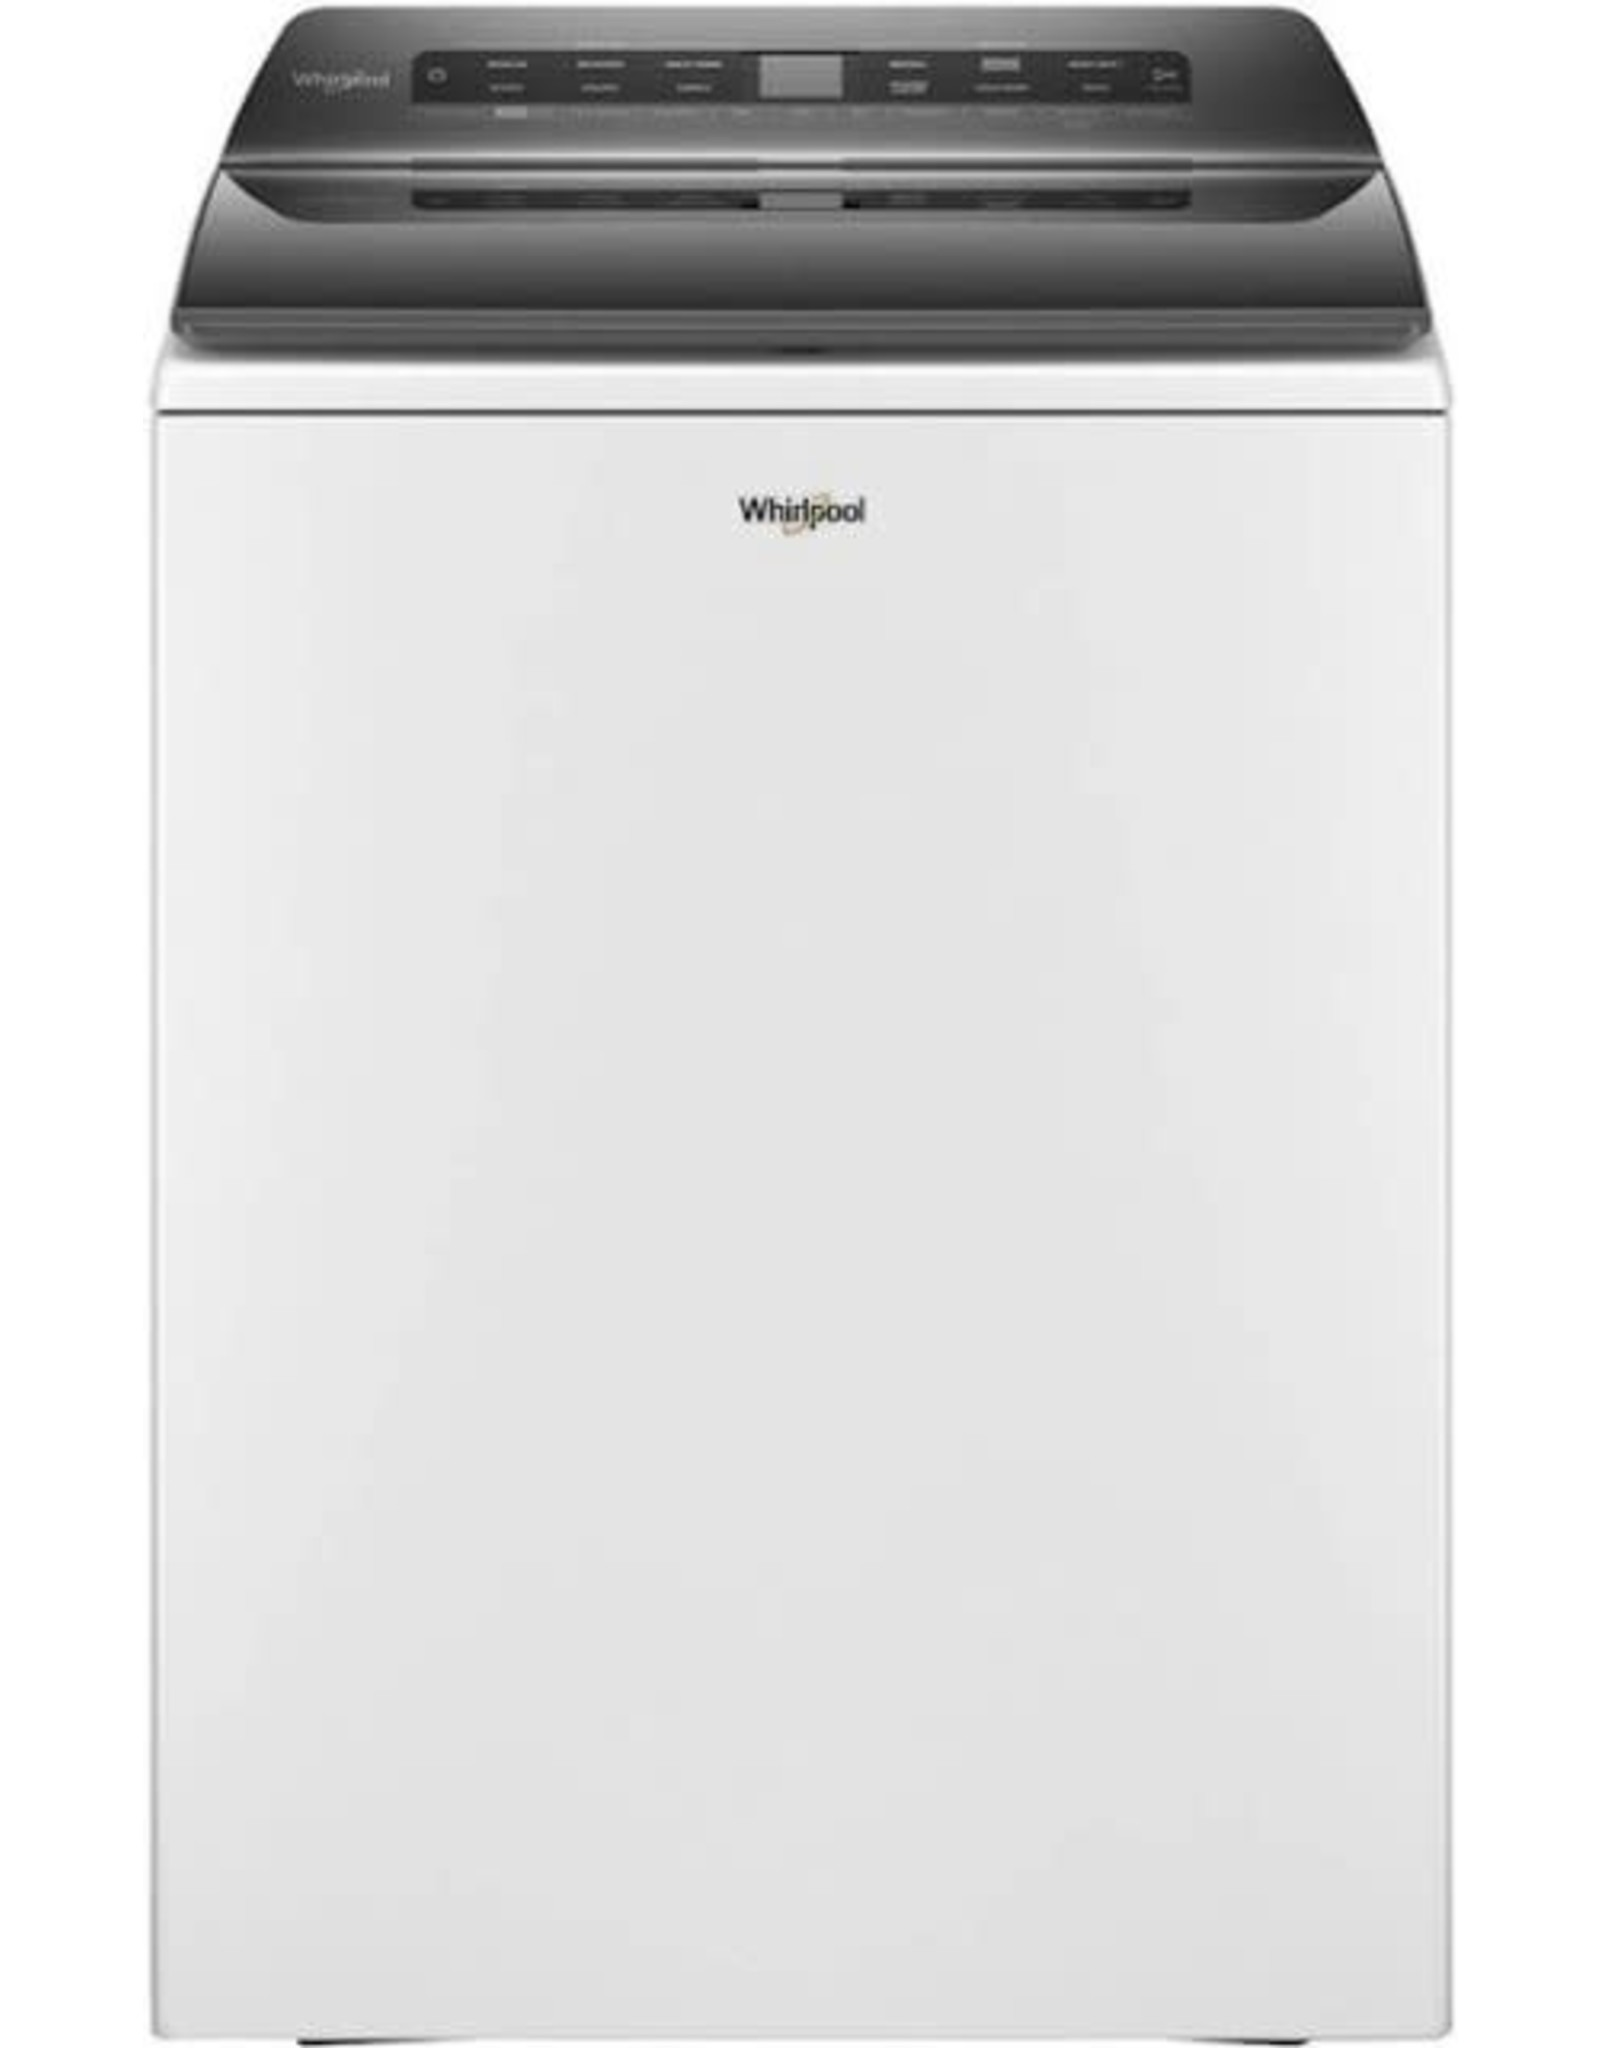 WHIRLPOOL Whirlpool 4.8 cu. ft. Smart White Top Load Washing Machine with Load and Go, Built-in Water Faucet and Stain Brush